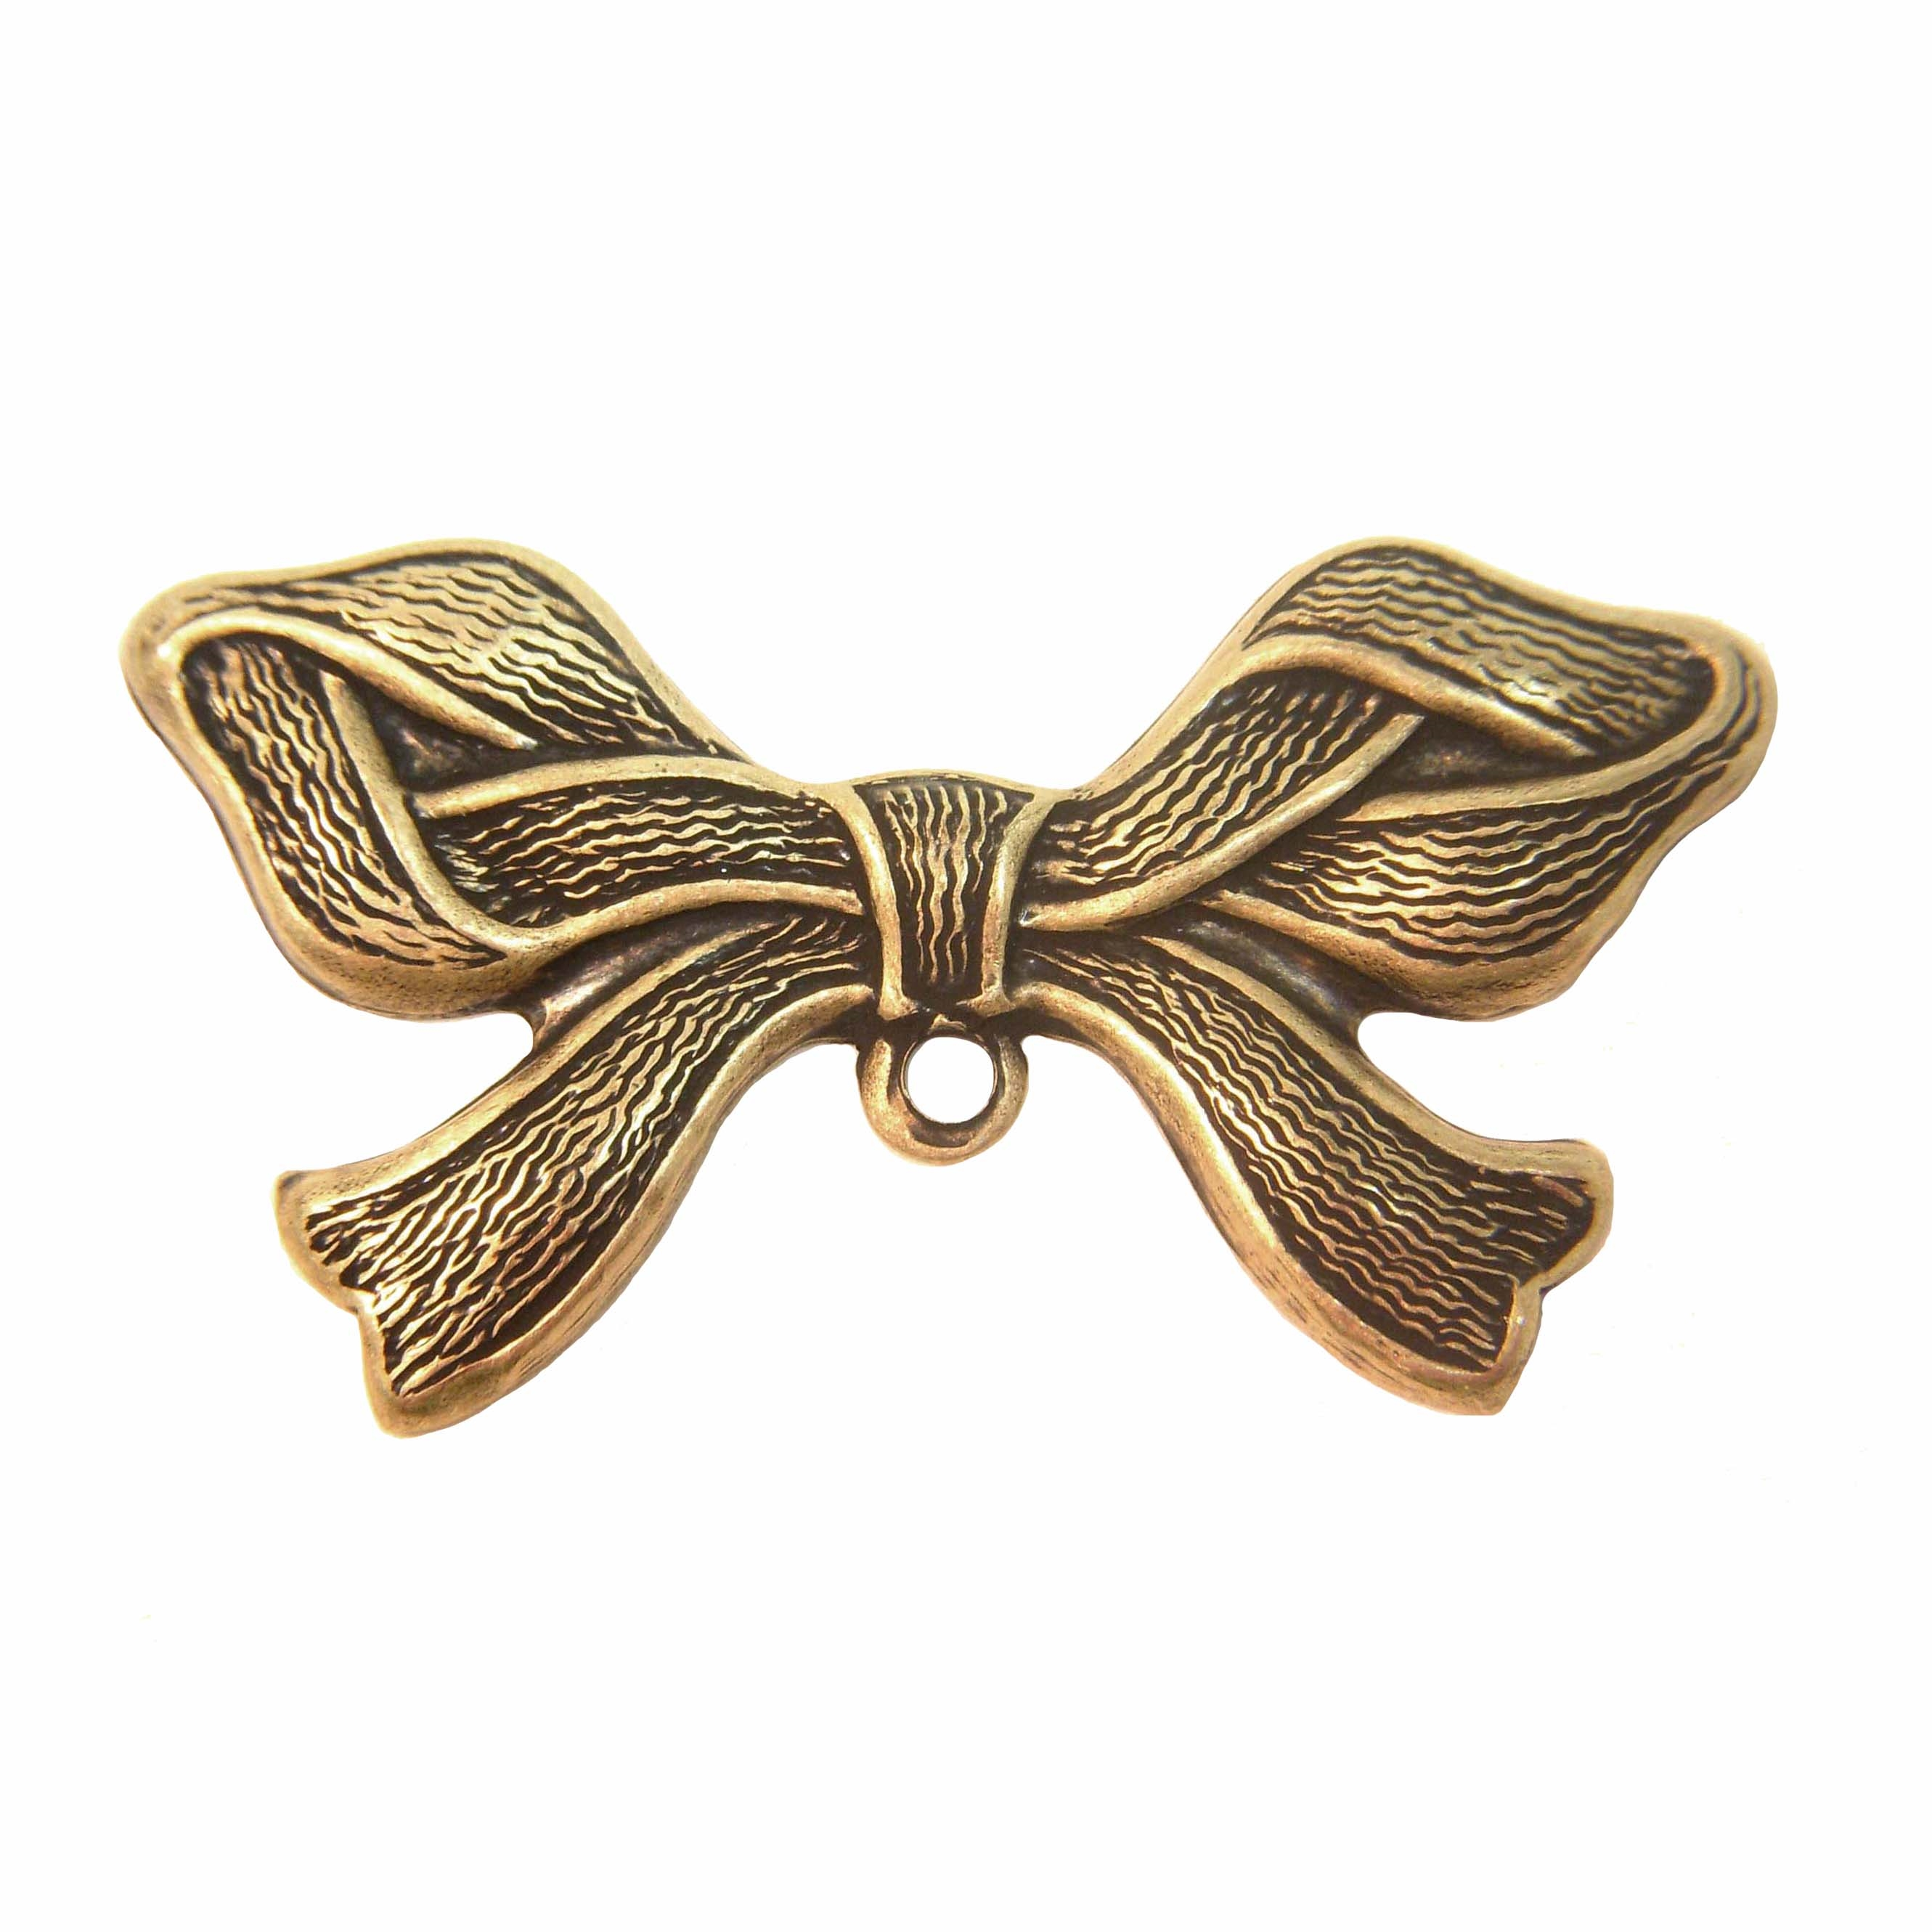 ribbon bow stamping, brass ox, antique brass, brass bow, bow ribbon, bow stampings, bow pendants, brass stamping, us made, nickel free, 22x42mm, ribbon bow, brass, stamping, jewelry making, jewelry supplies, vintage supplies, jewelry findings, 0258